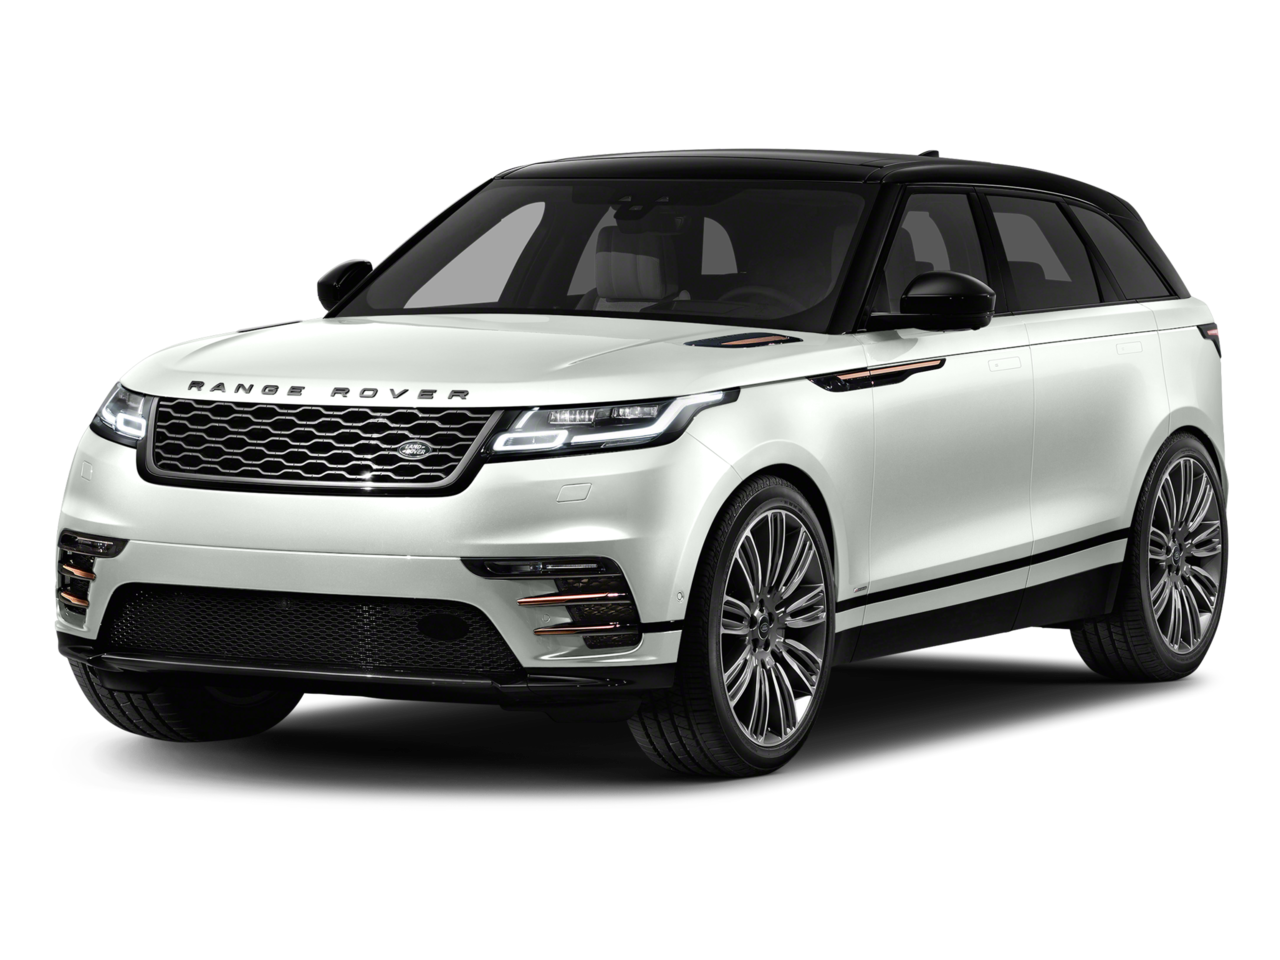 Land Rover PNG Image.